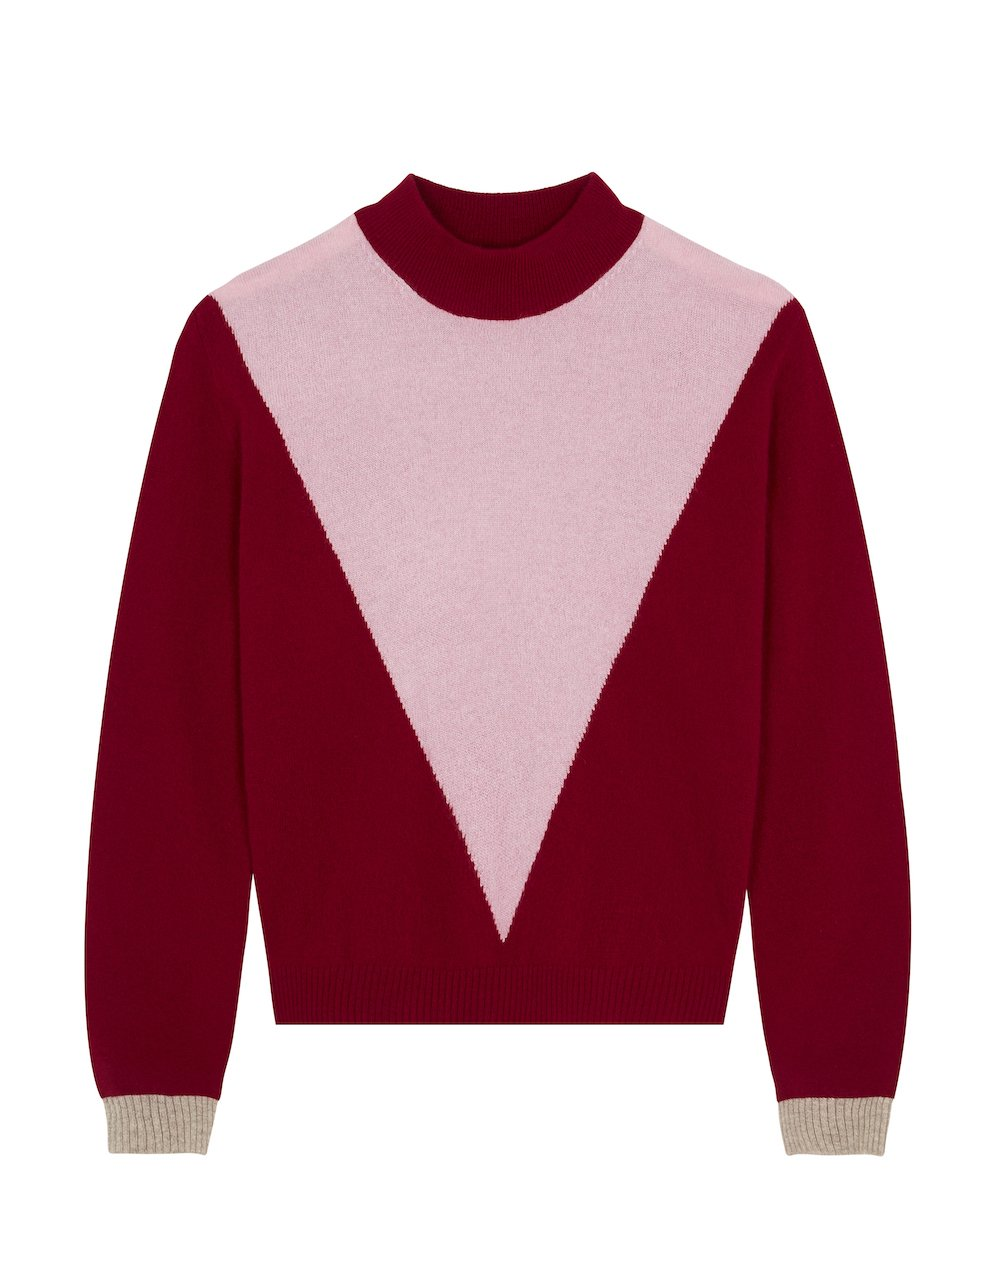 MAKEDA MATHESON- INTARSIA V SWEATER PINK BERRY